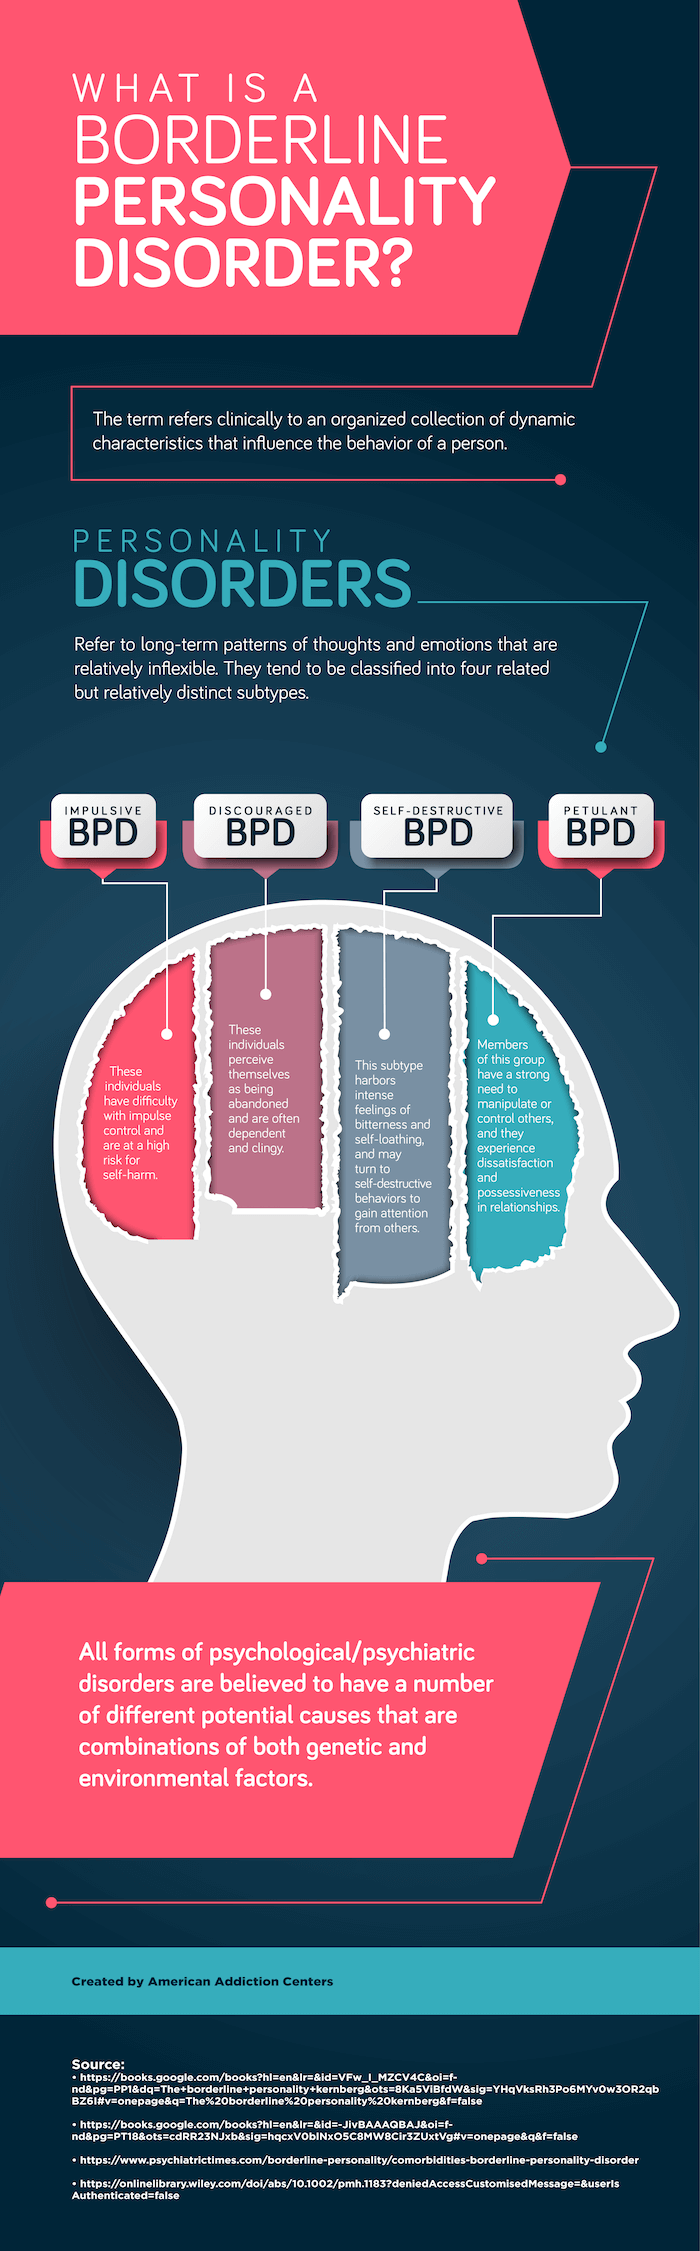 What Is Borderline Personality Disorder >> What Is Borderline Personality Disorder